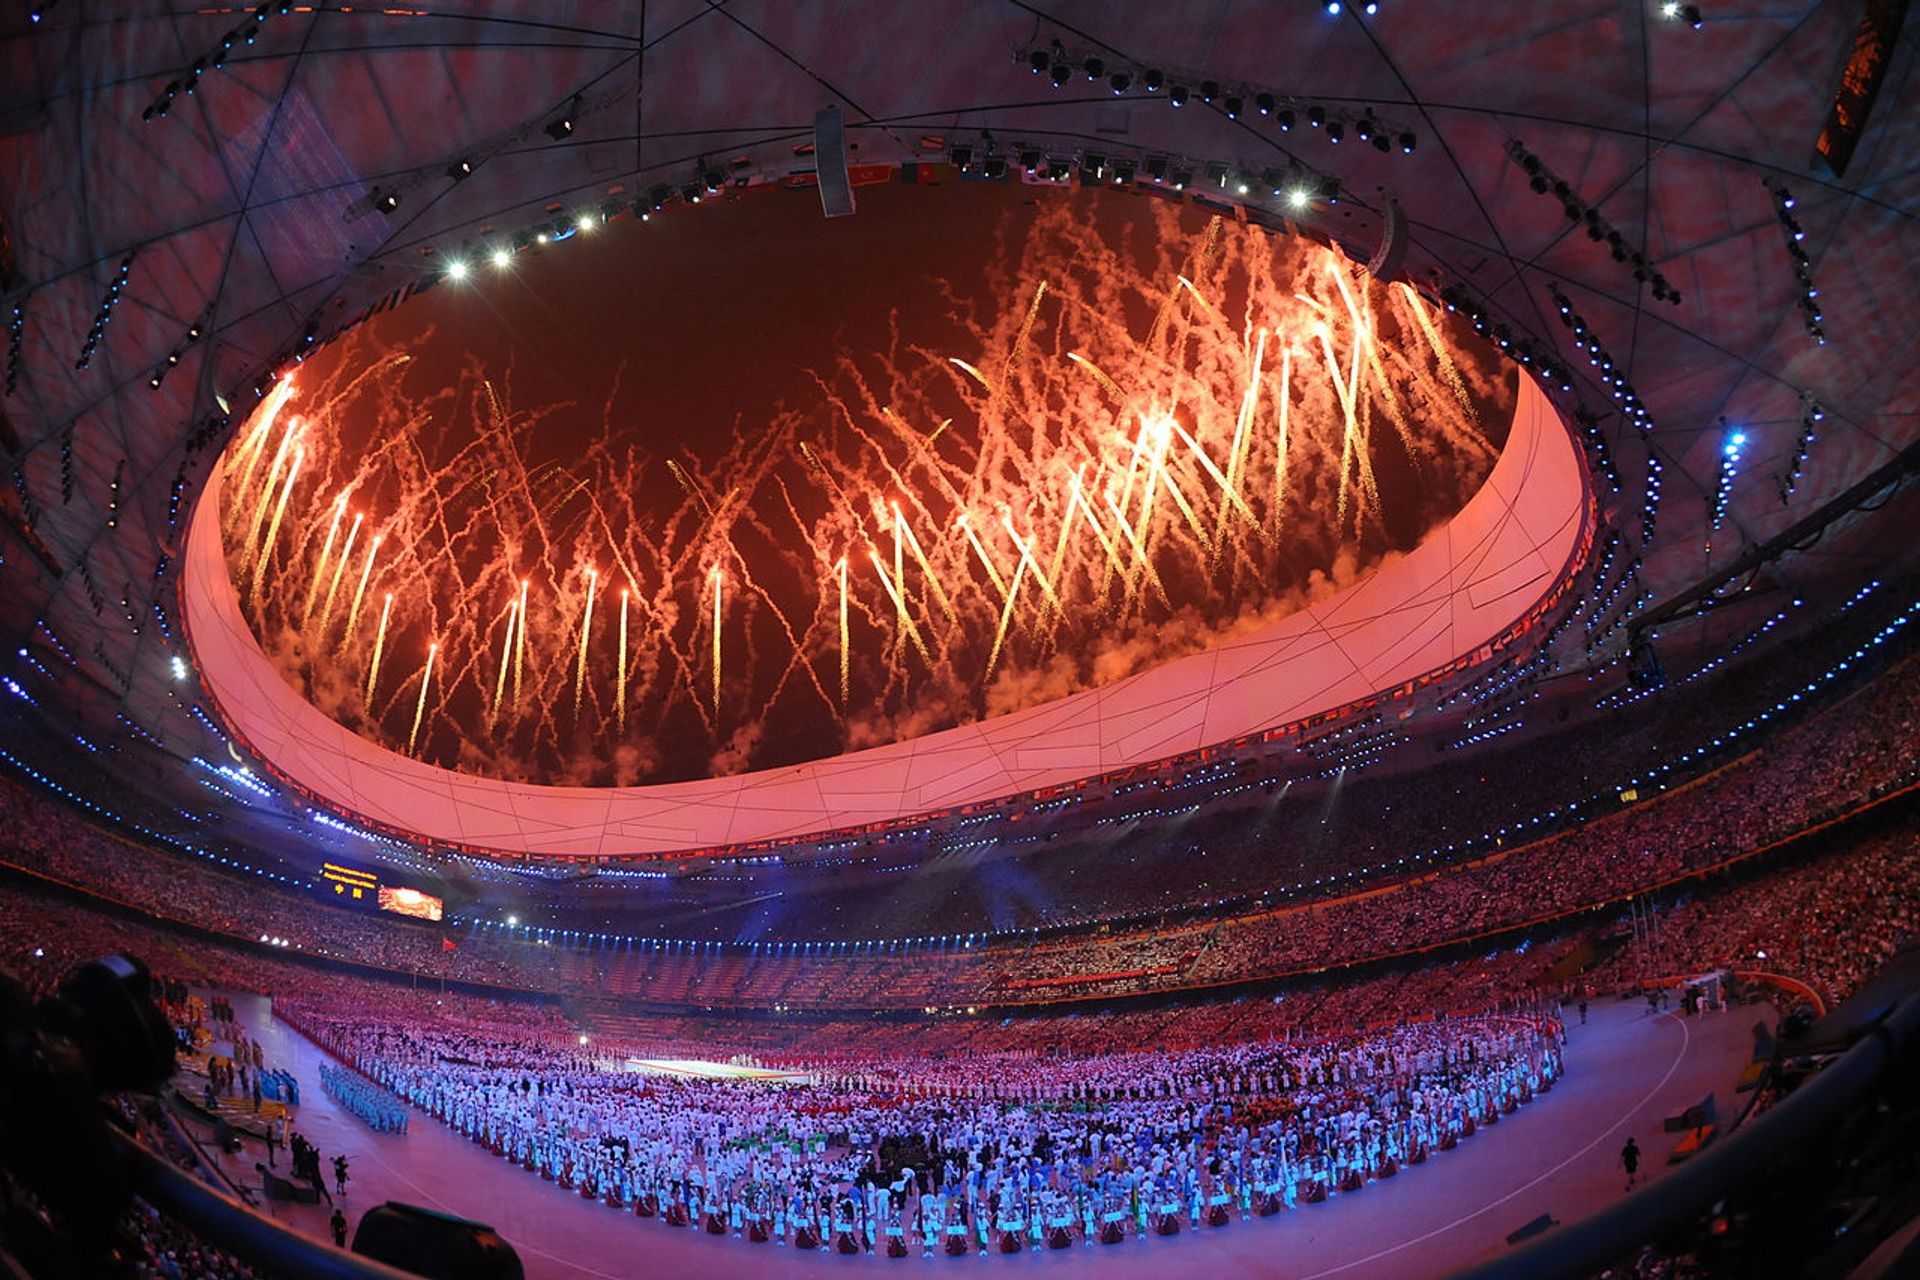 Part of Cai Guo-Qiang's display at the opening ceremony of the 2008 Olympics in Beijing, China